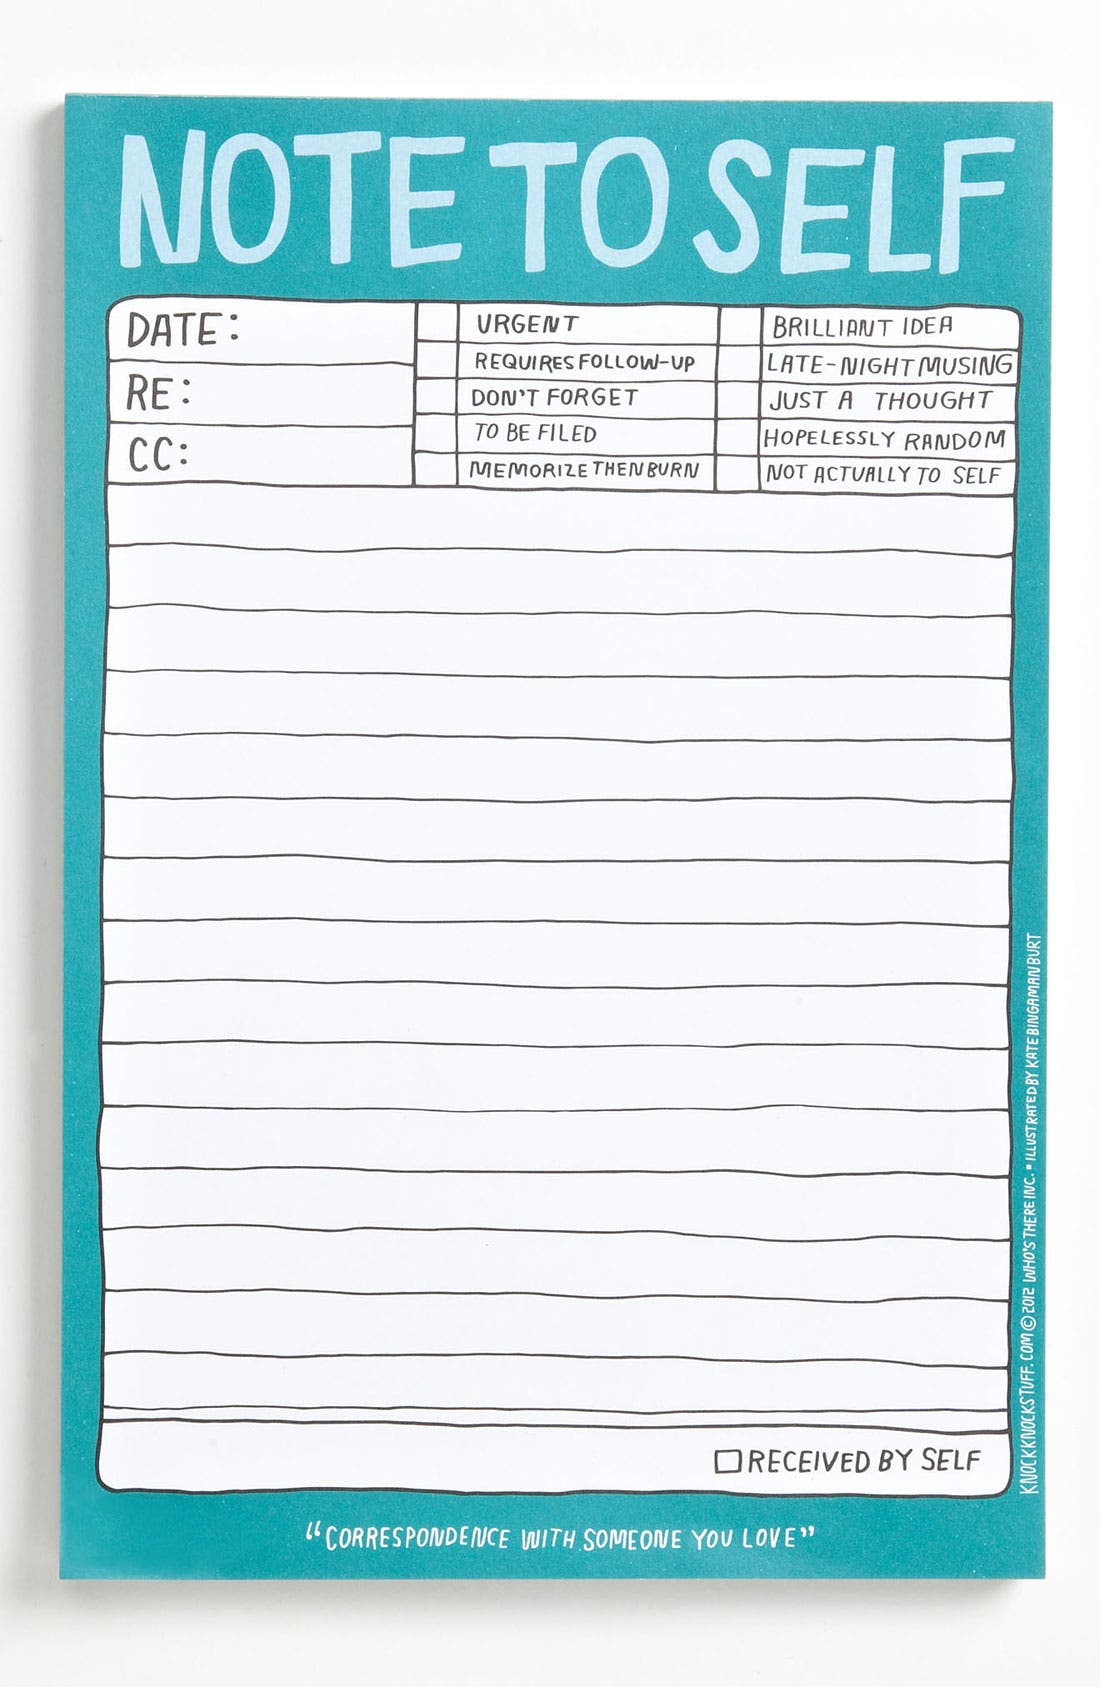 Alternate Image 1 Selected - Knock Knock 'Note to Self' Notepad